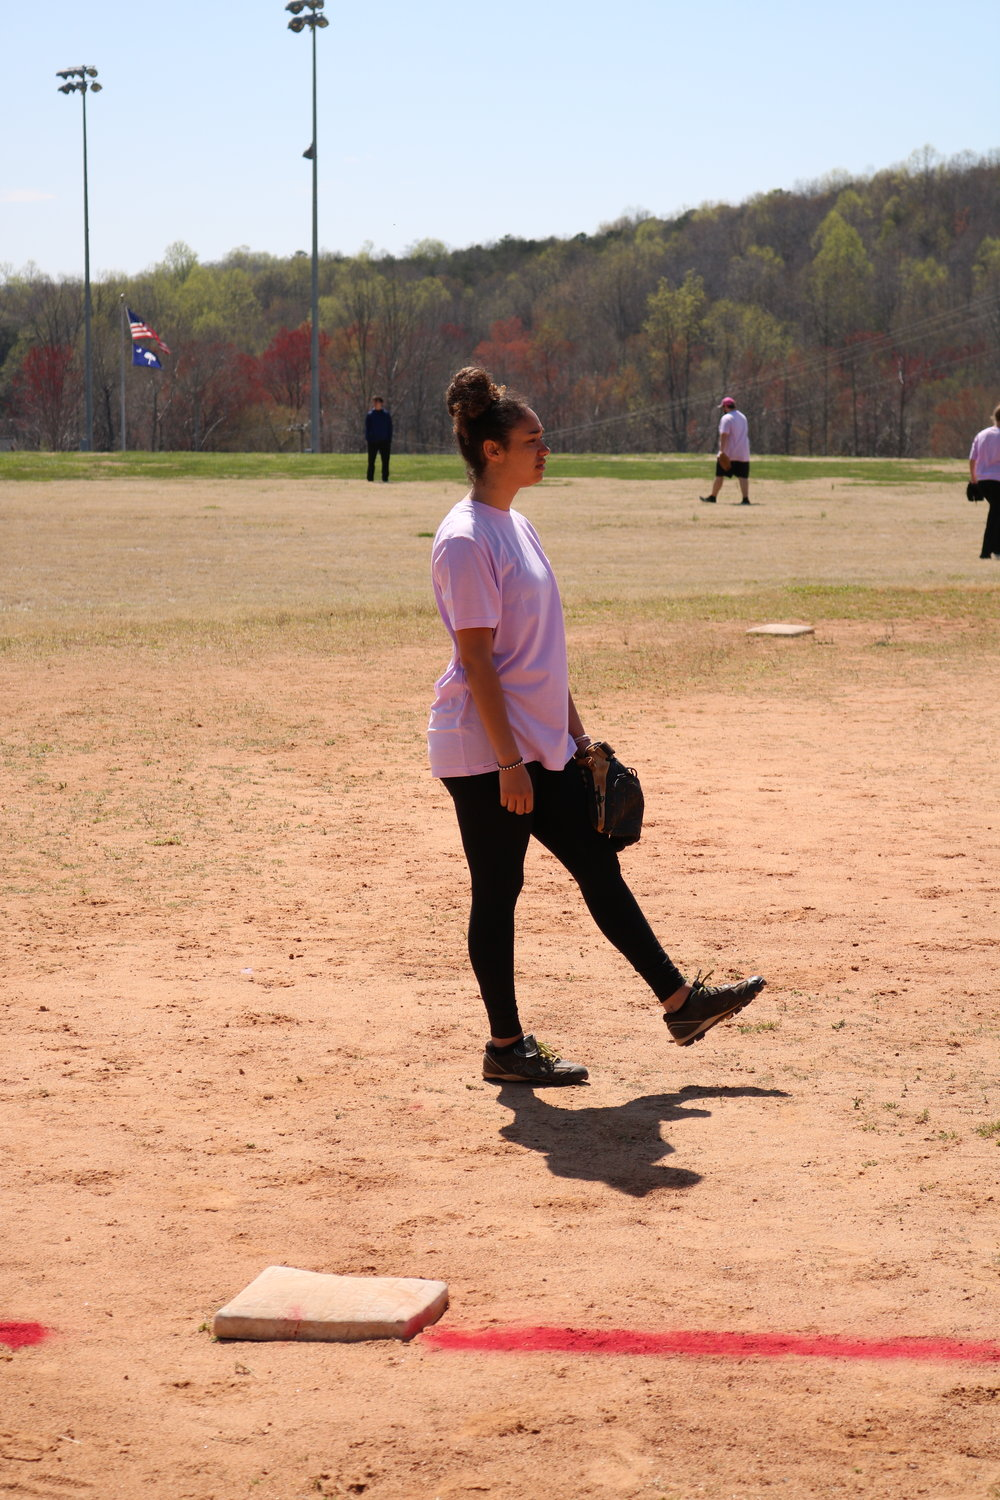 Freshman Lydia DuRant waits next to third base as the rest of her team gets into their positions on the field.